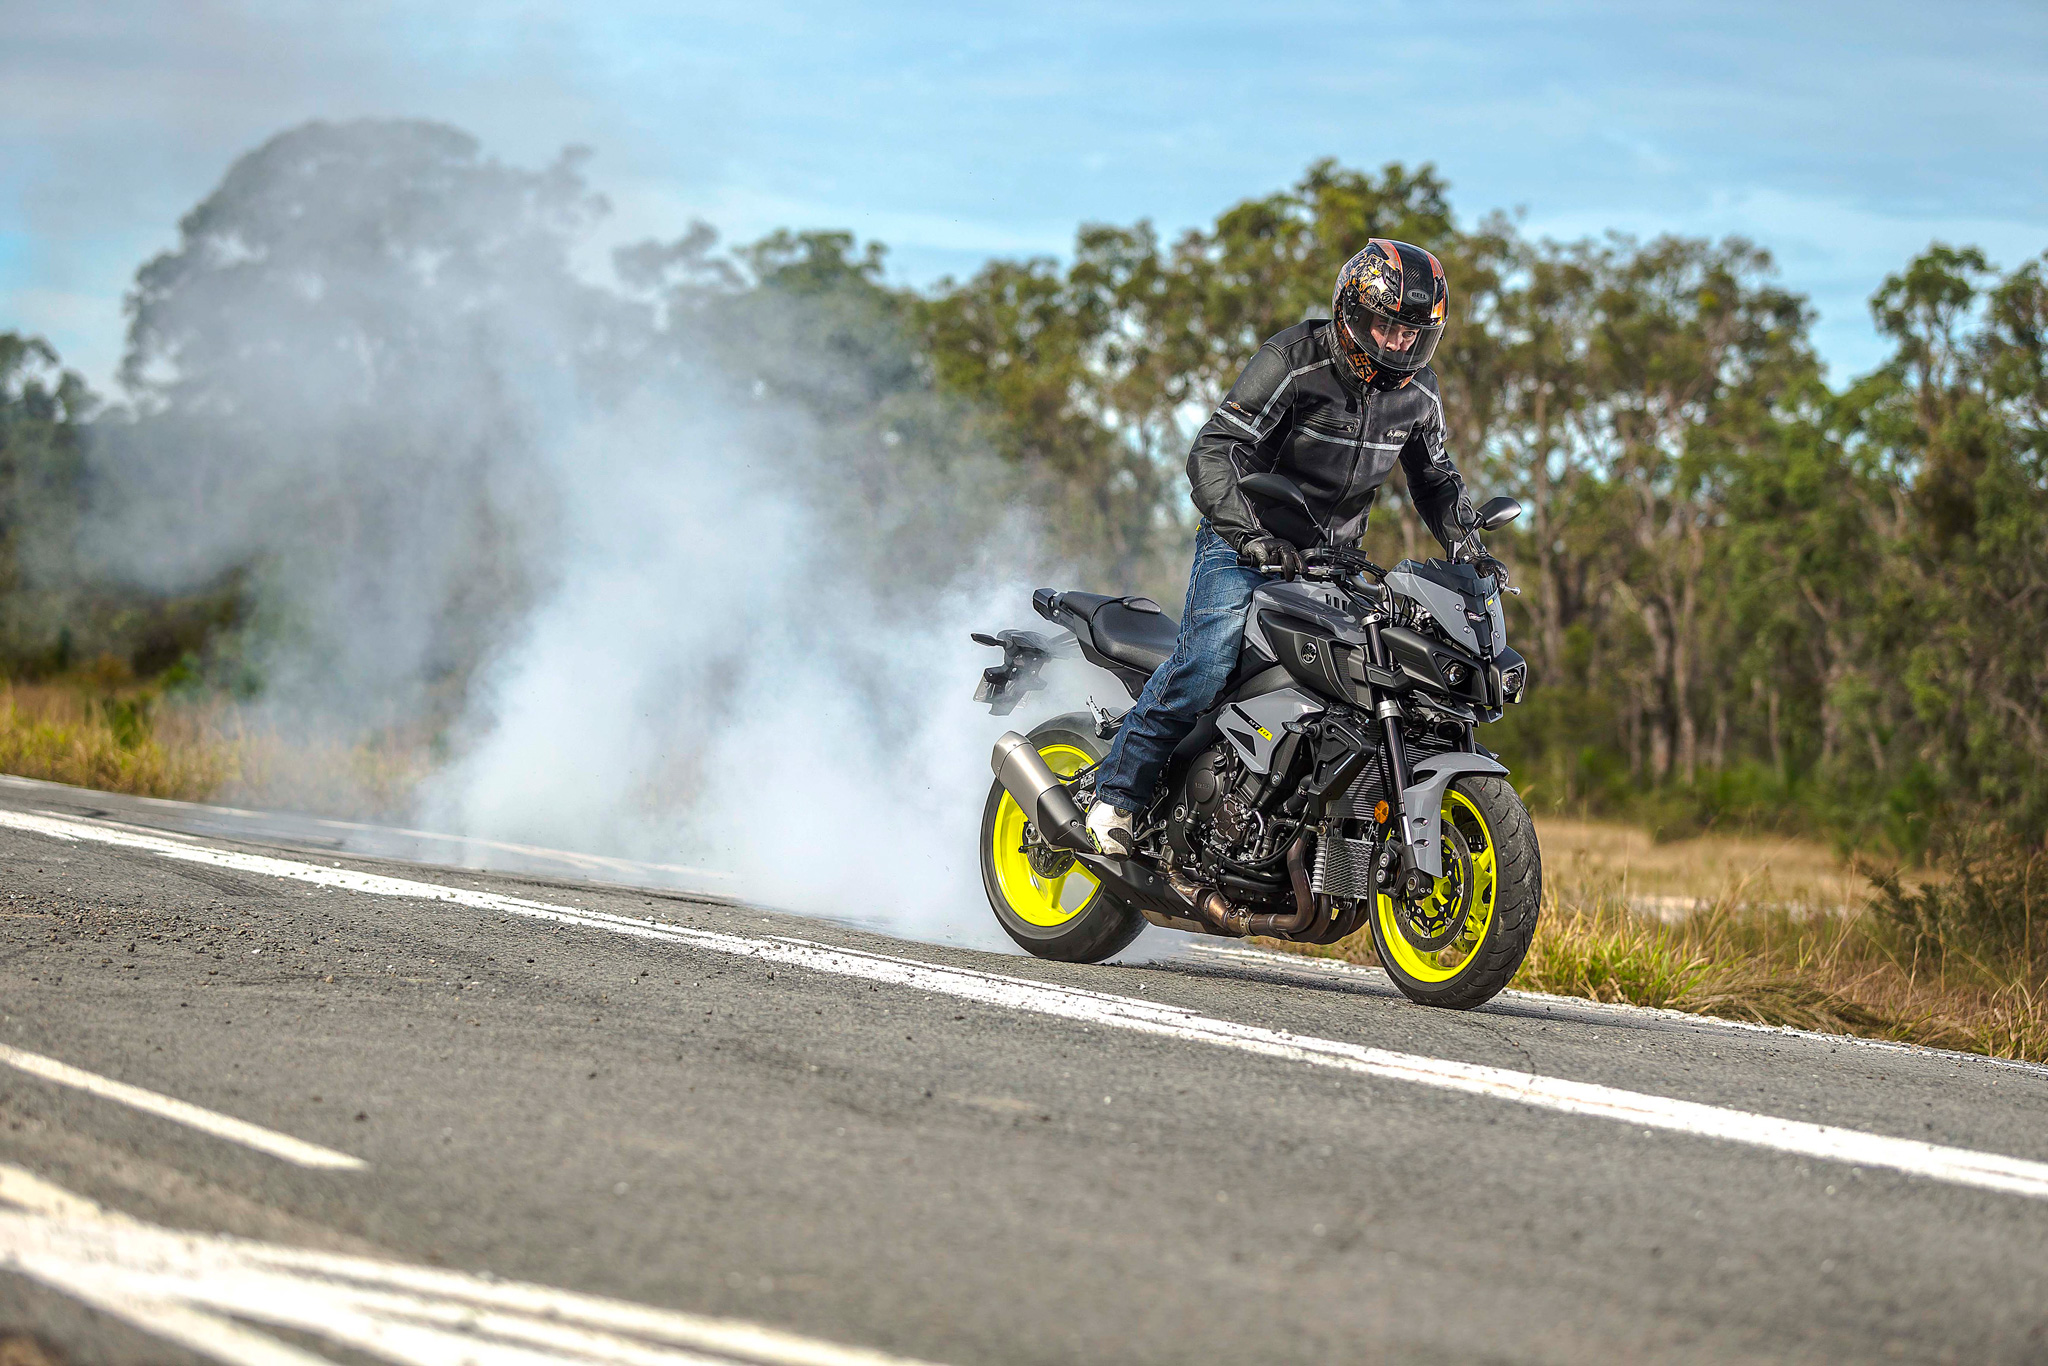 yamaha-mt-10-action-burnout